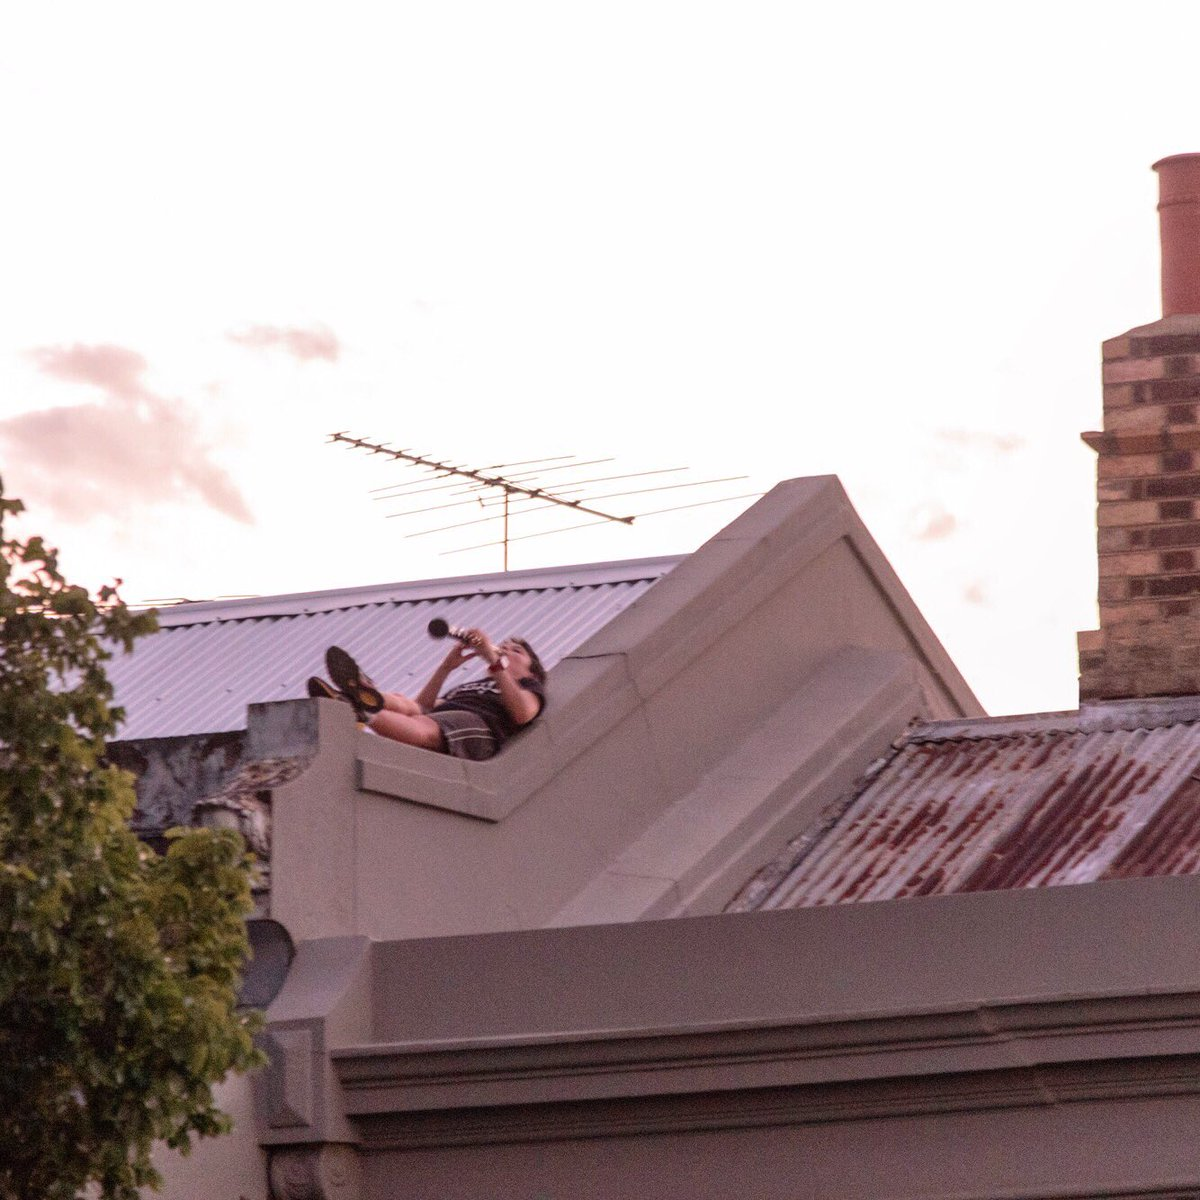 Rooftops of Fitzroy. #fitzroy #melbourne #clarinet <br>http://pic.twitter.com/nR9NcKoEHN